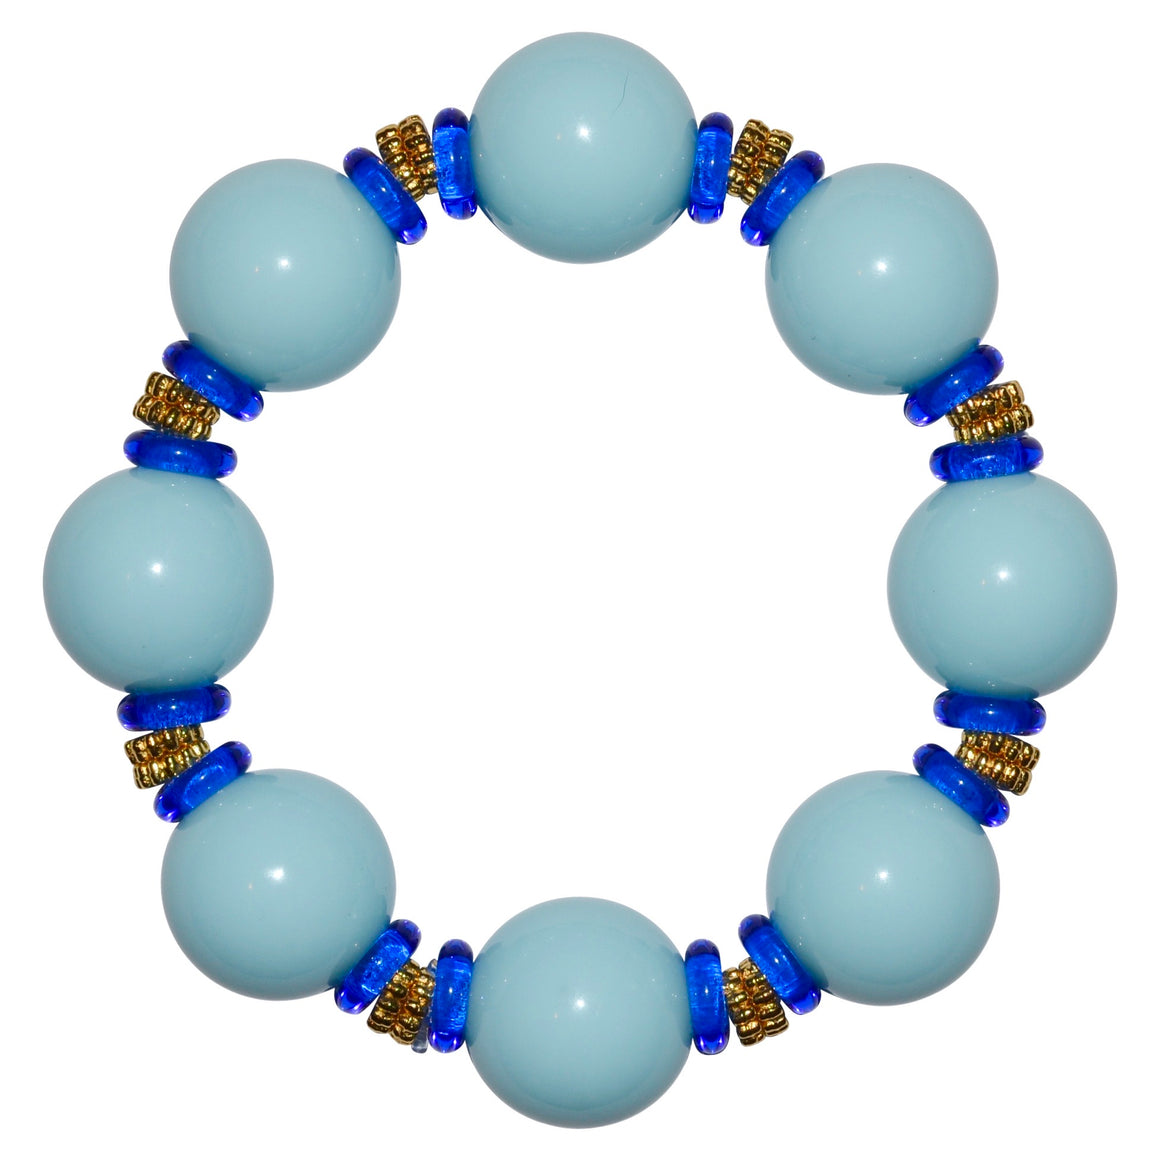 VIVIENNE STATEMENT ANYTIME BRACELET IN LIGHT BLUE